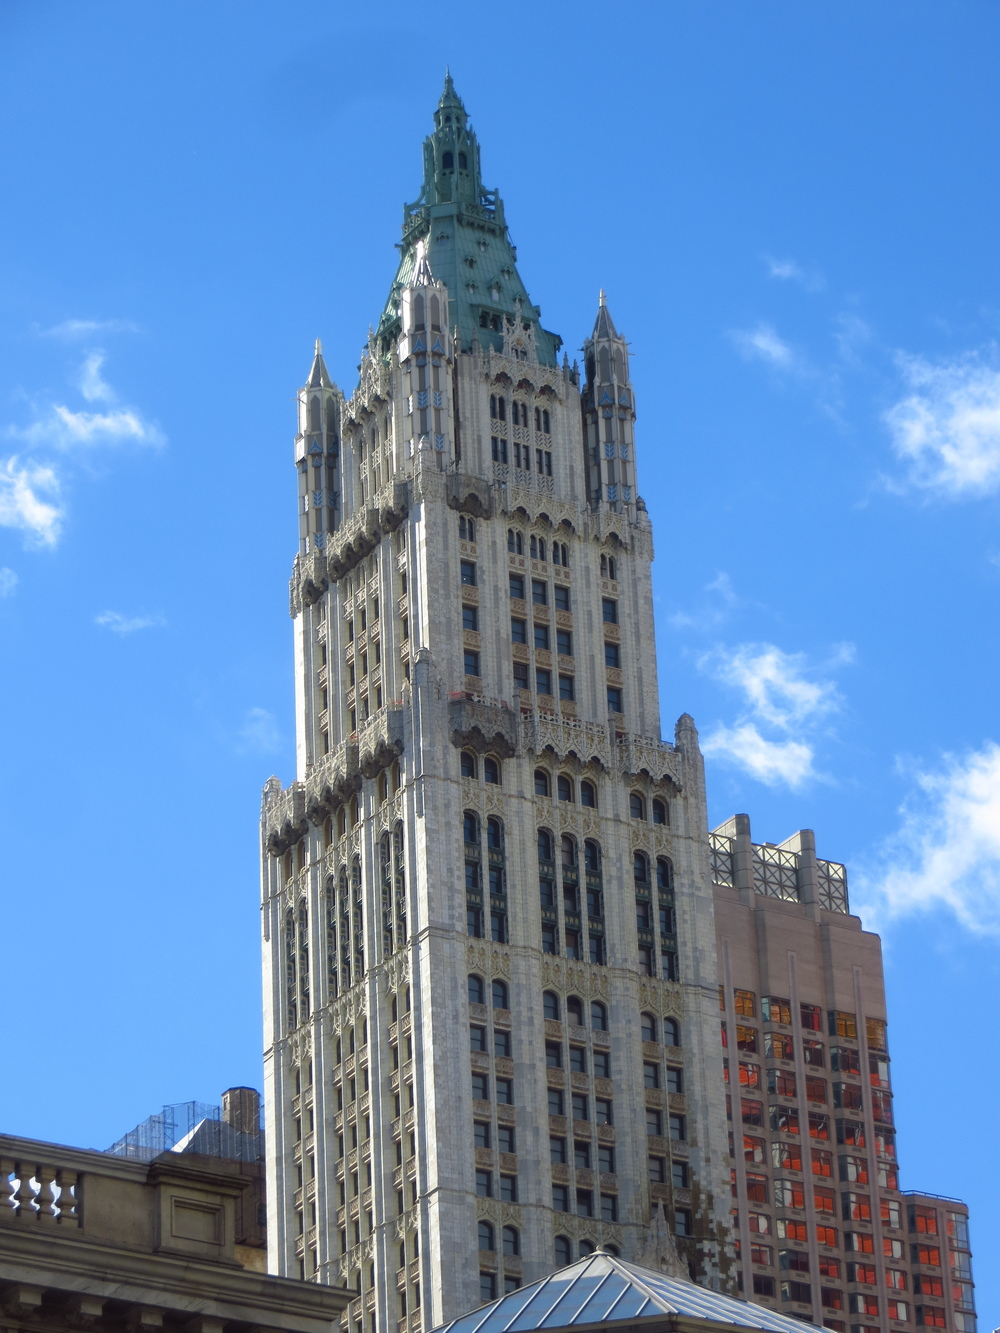 Woolworth Building (b. 1913)